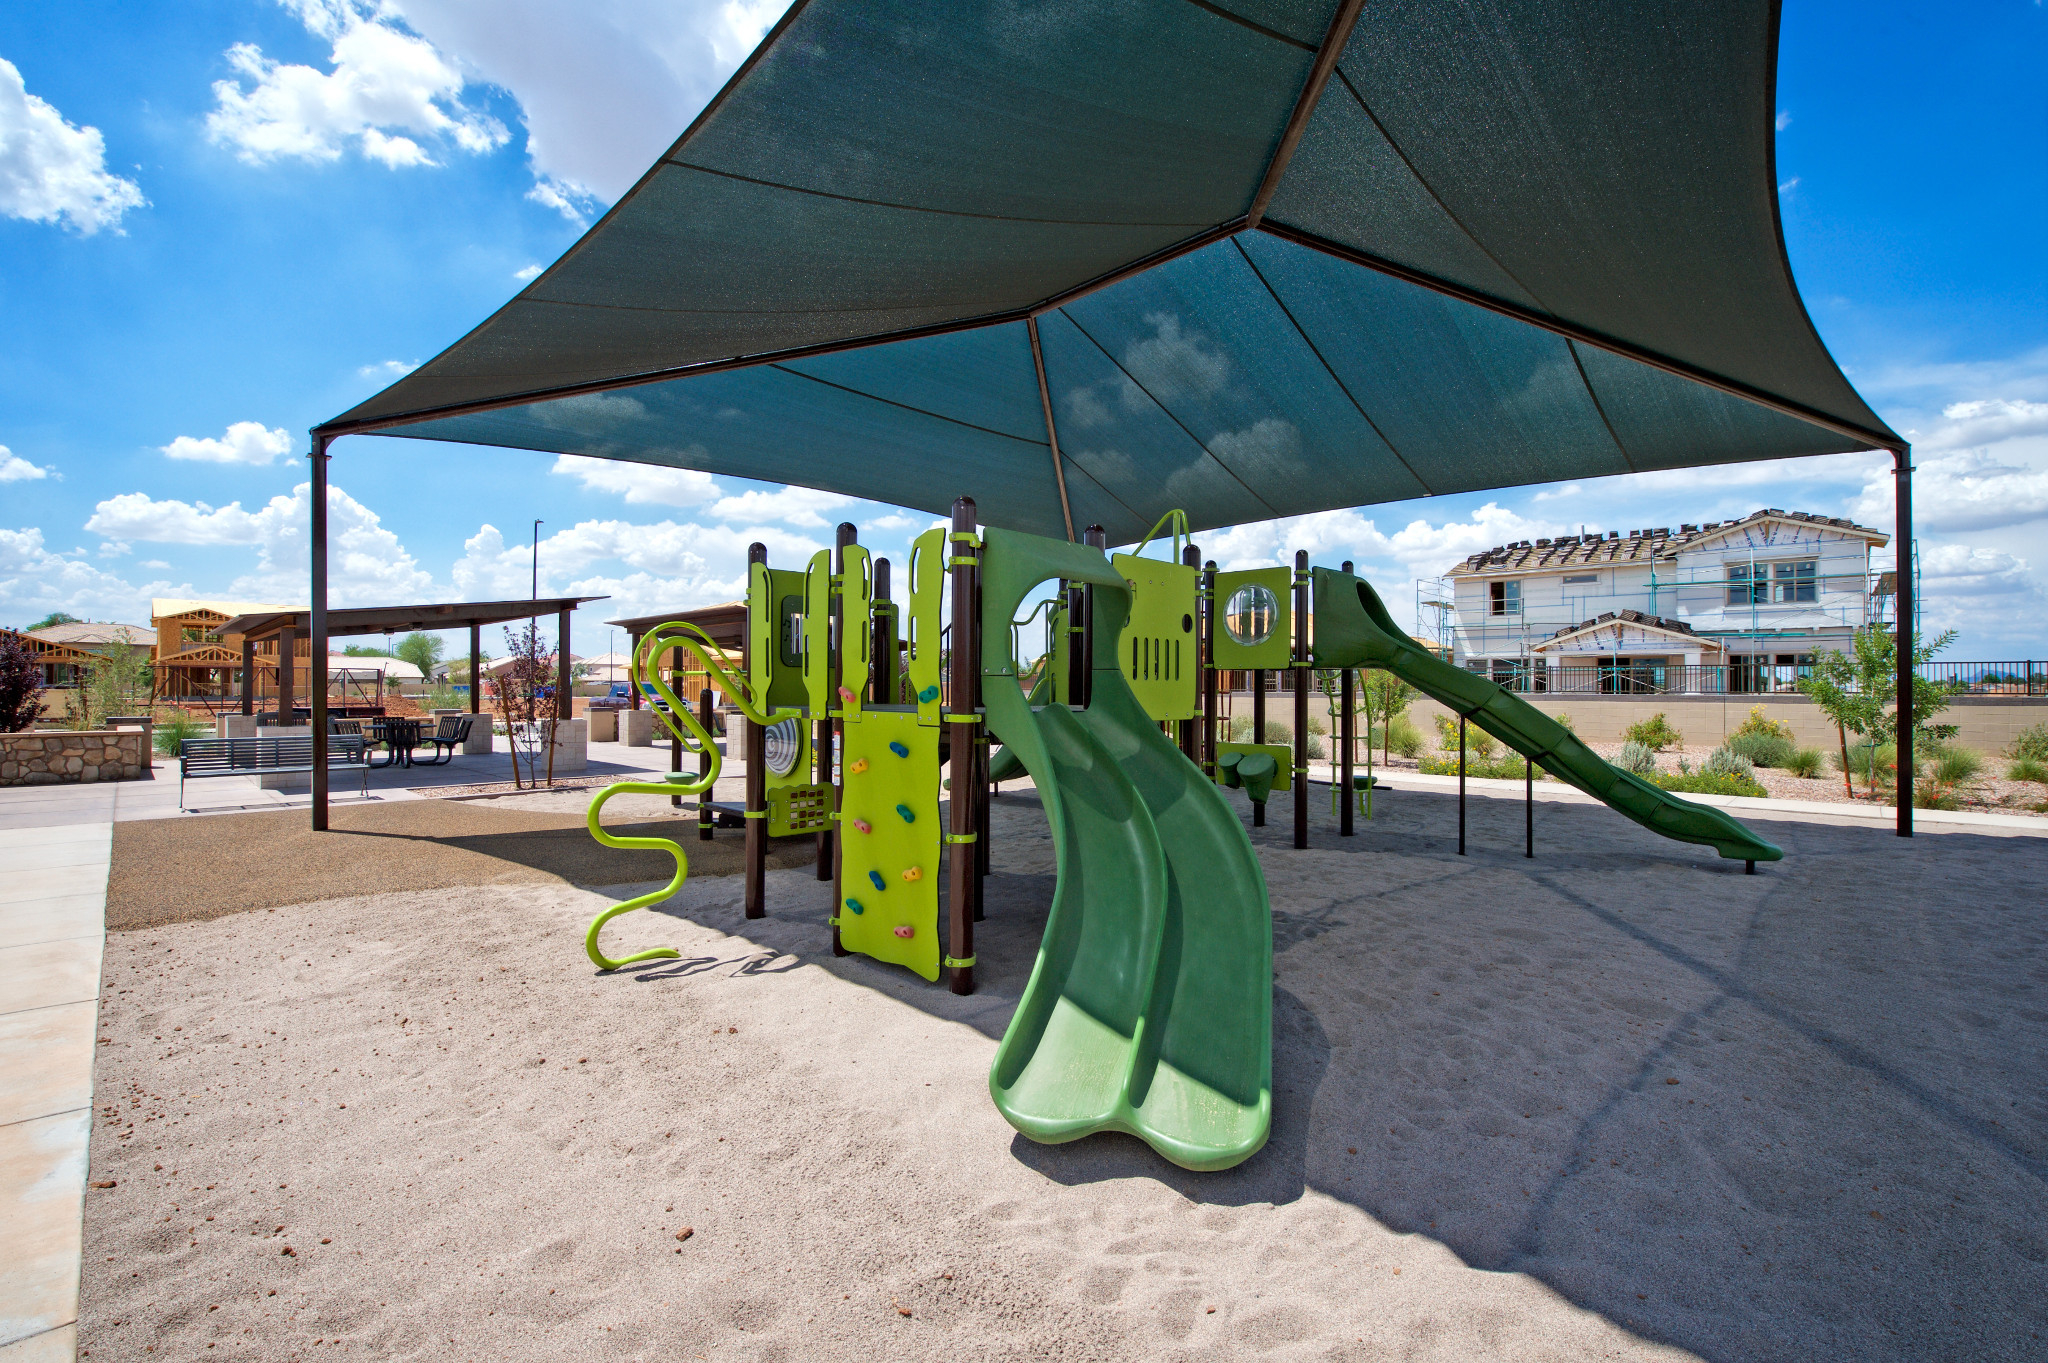 Recker Pointe Community Playground